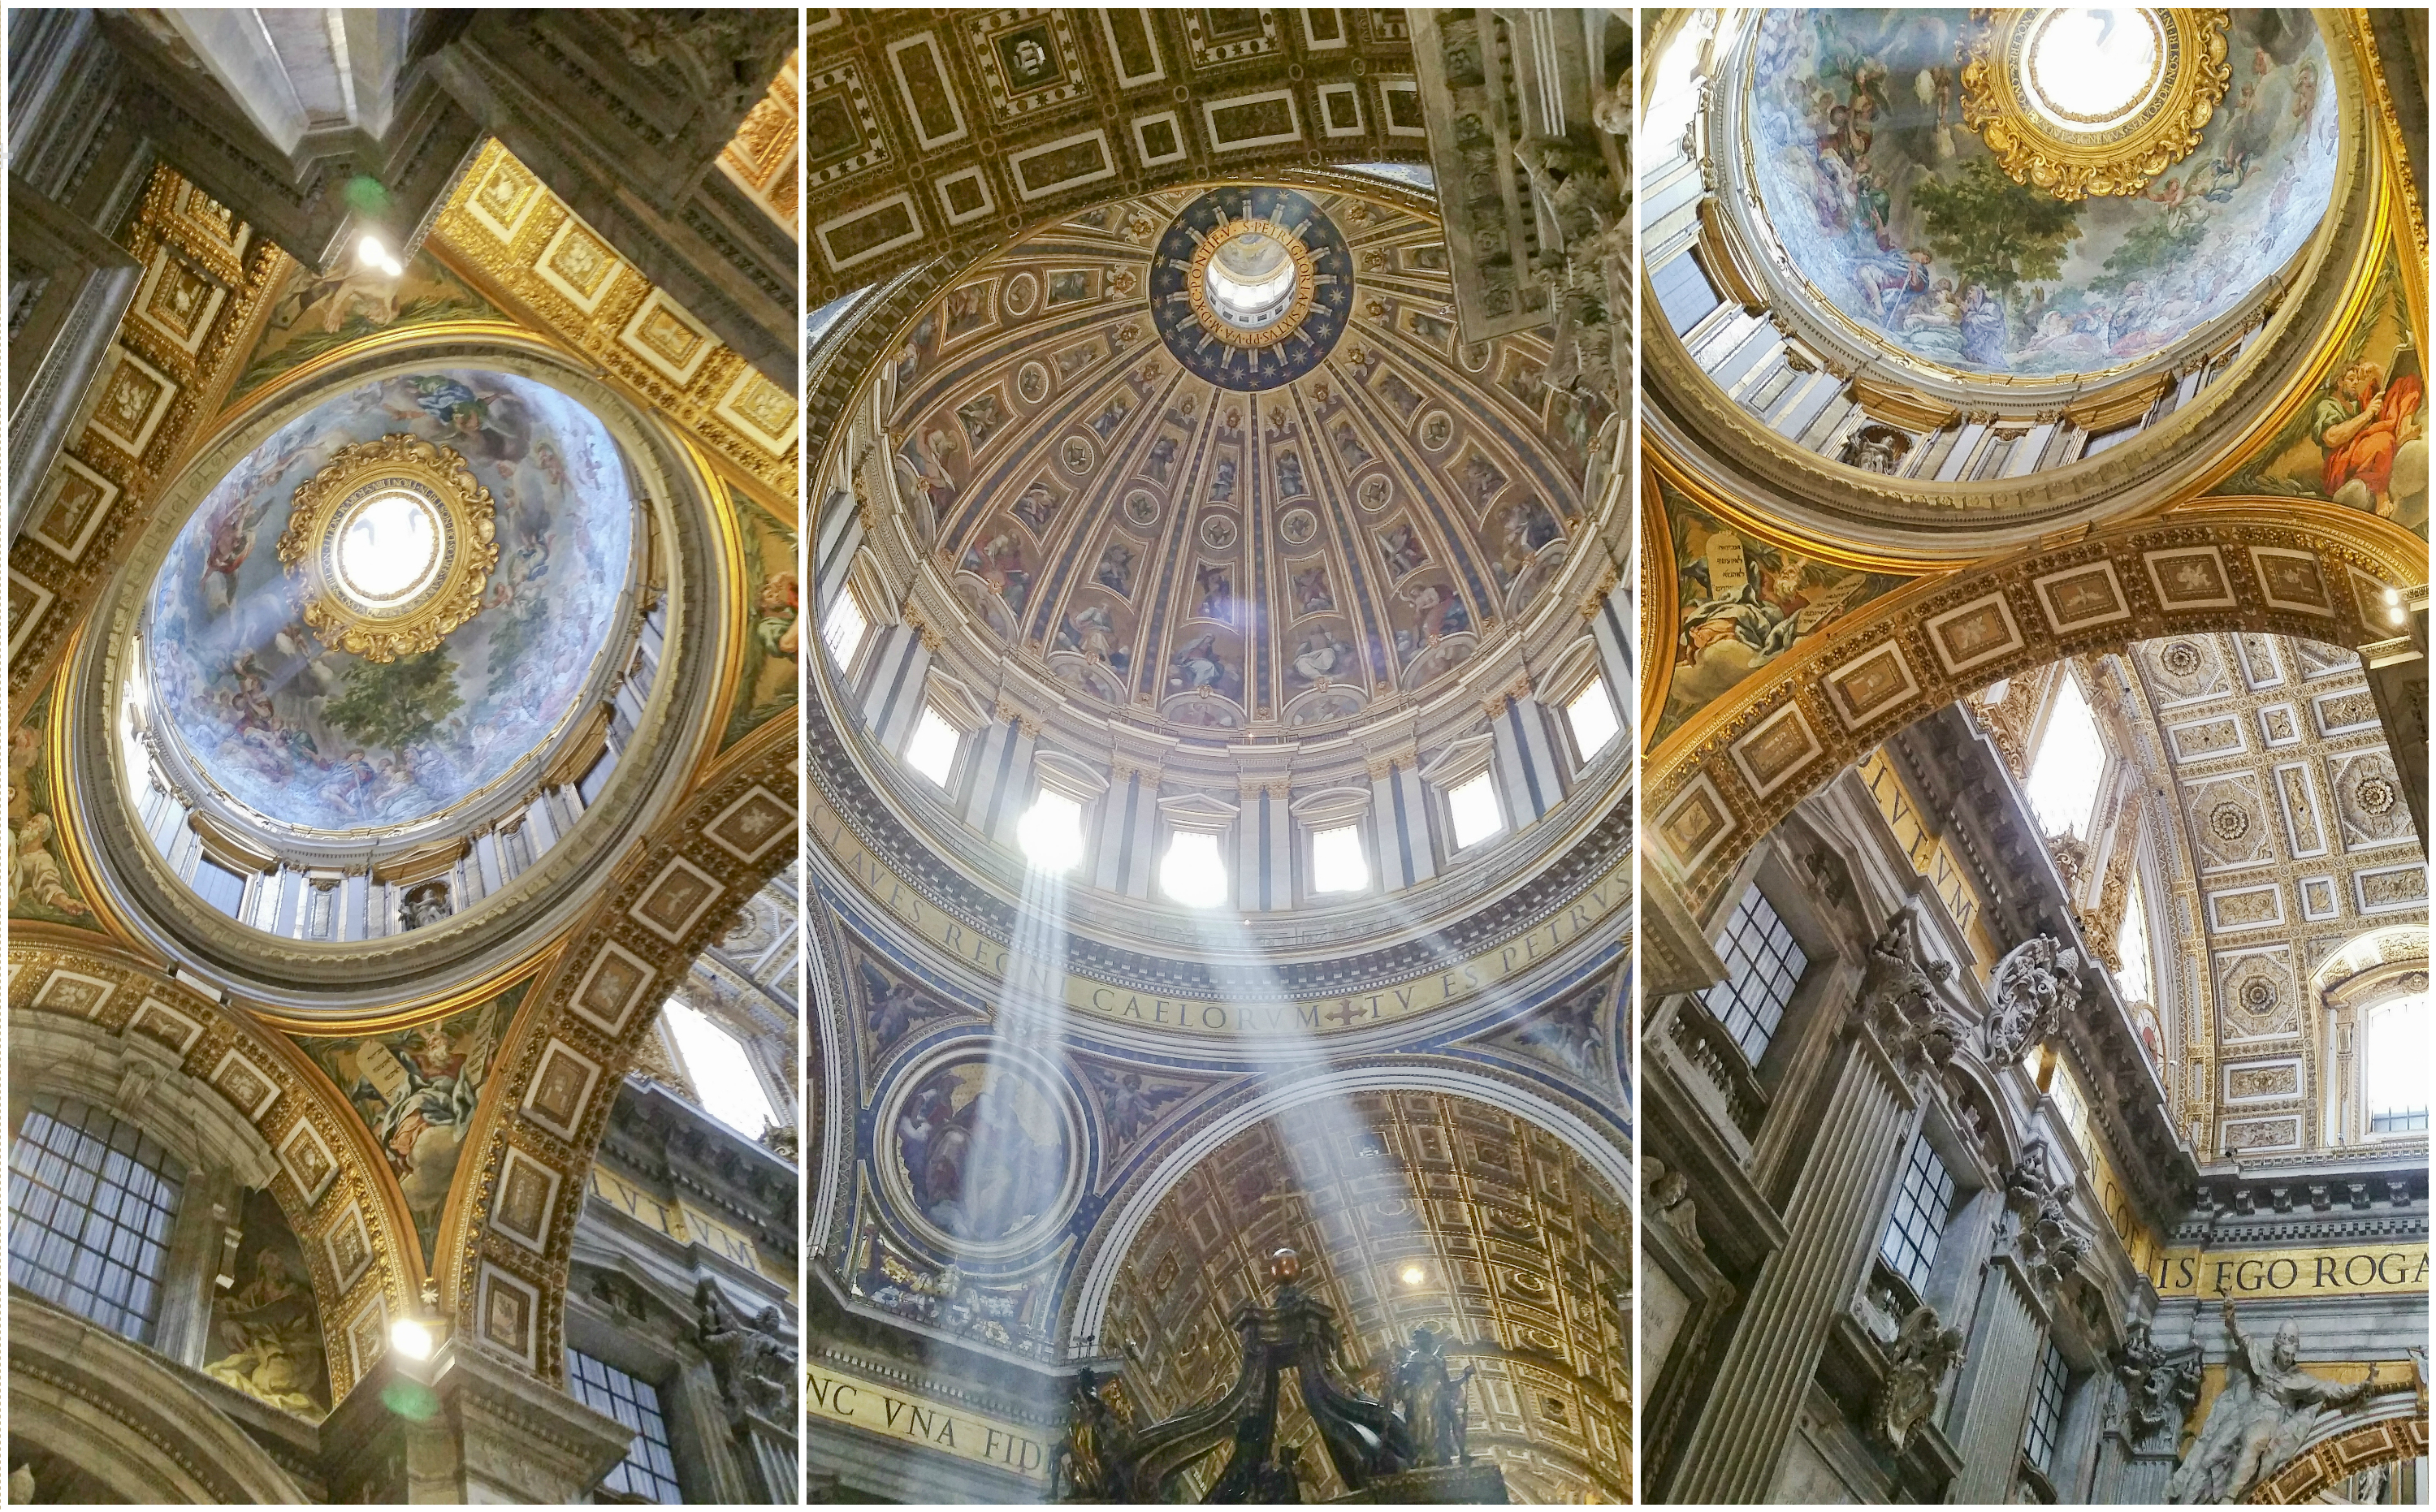 Inside the Saint Peter's Basilica